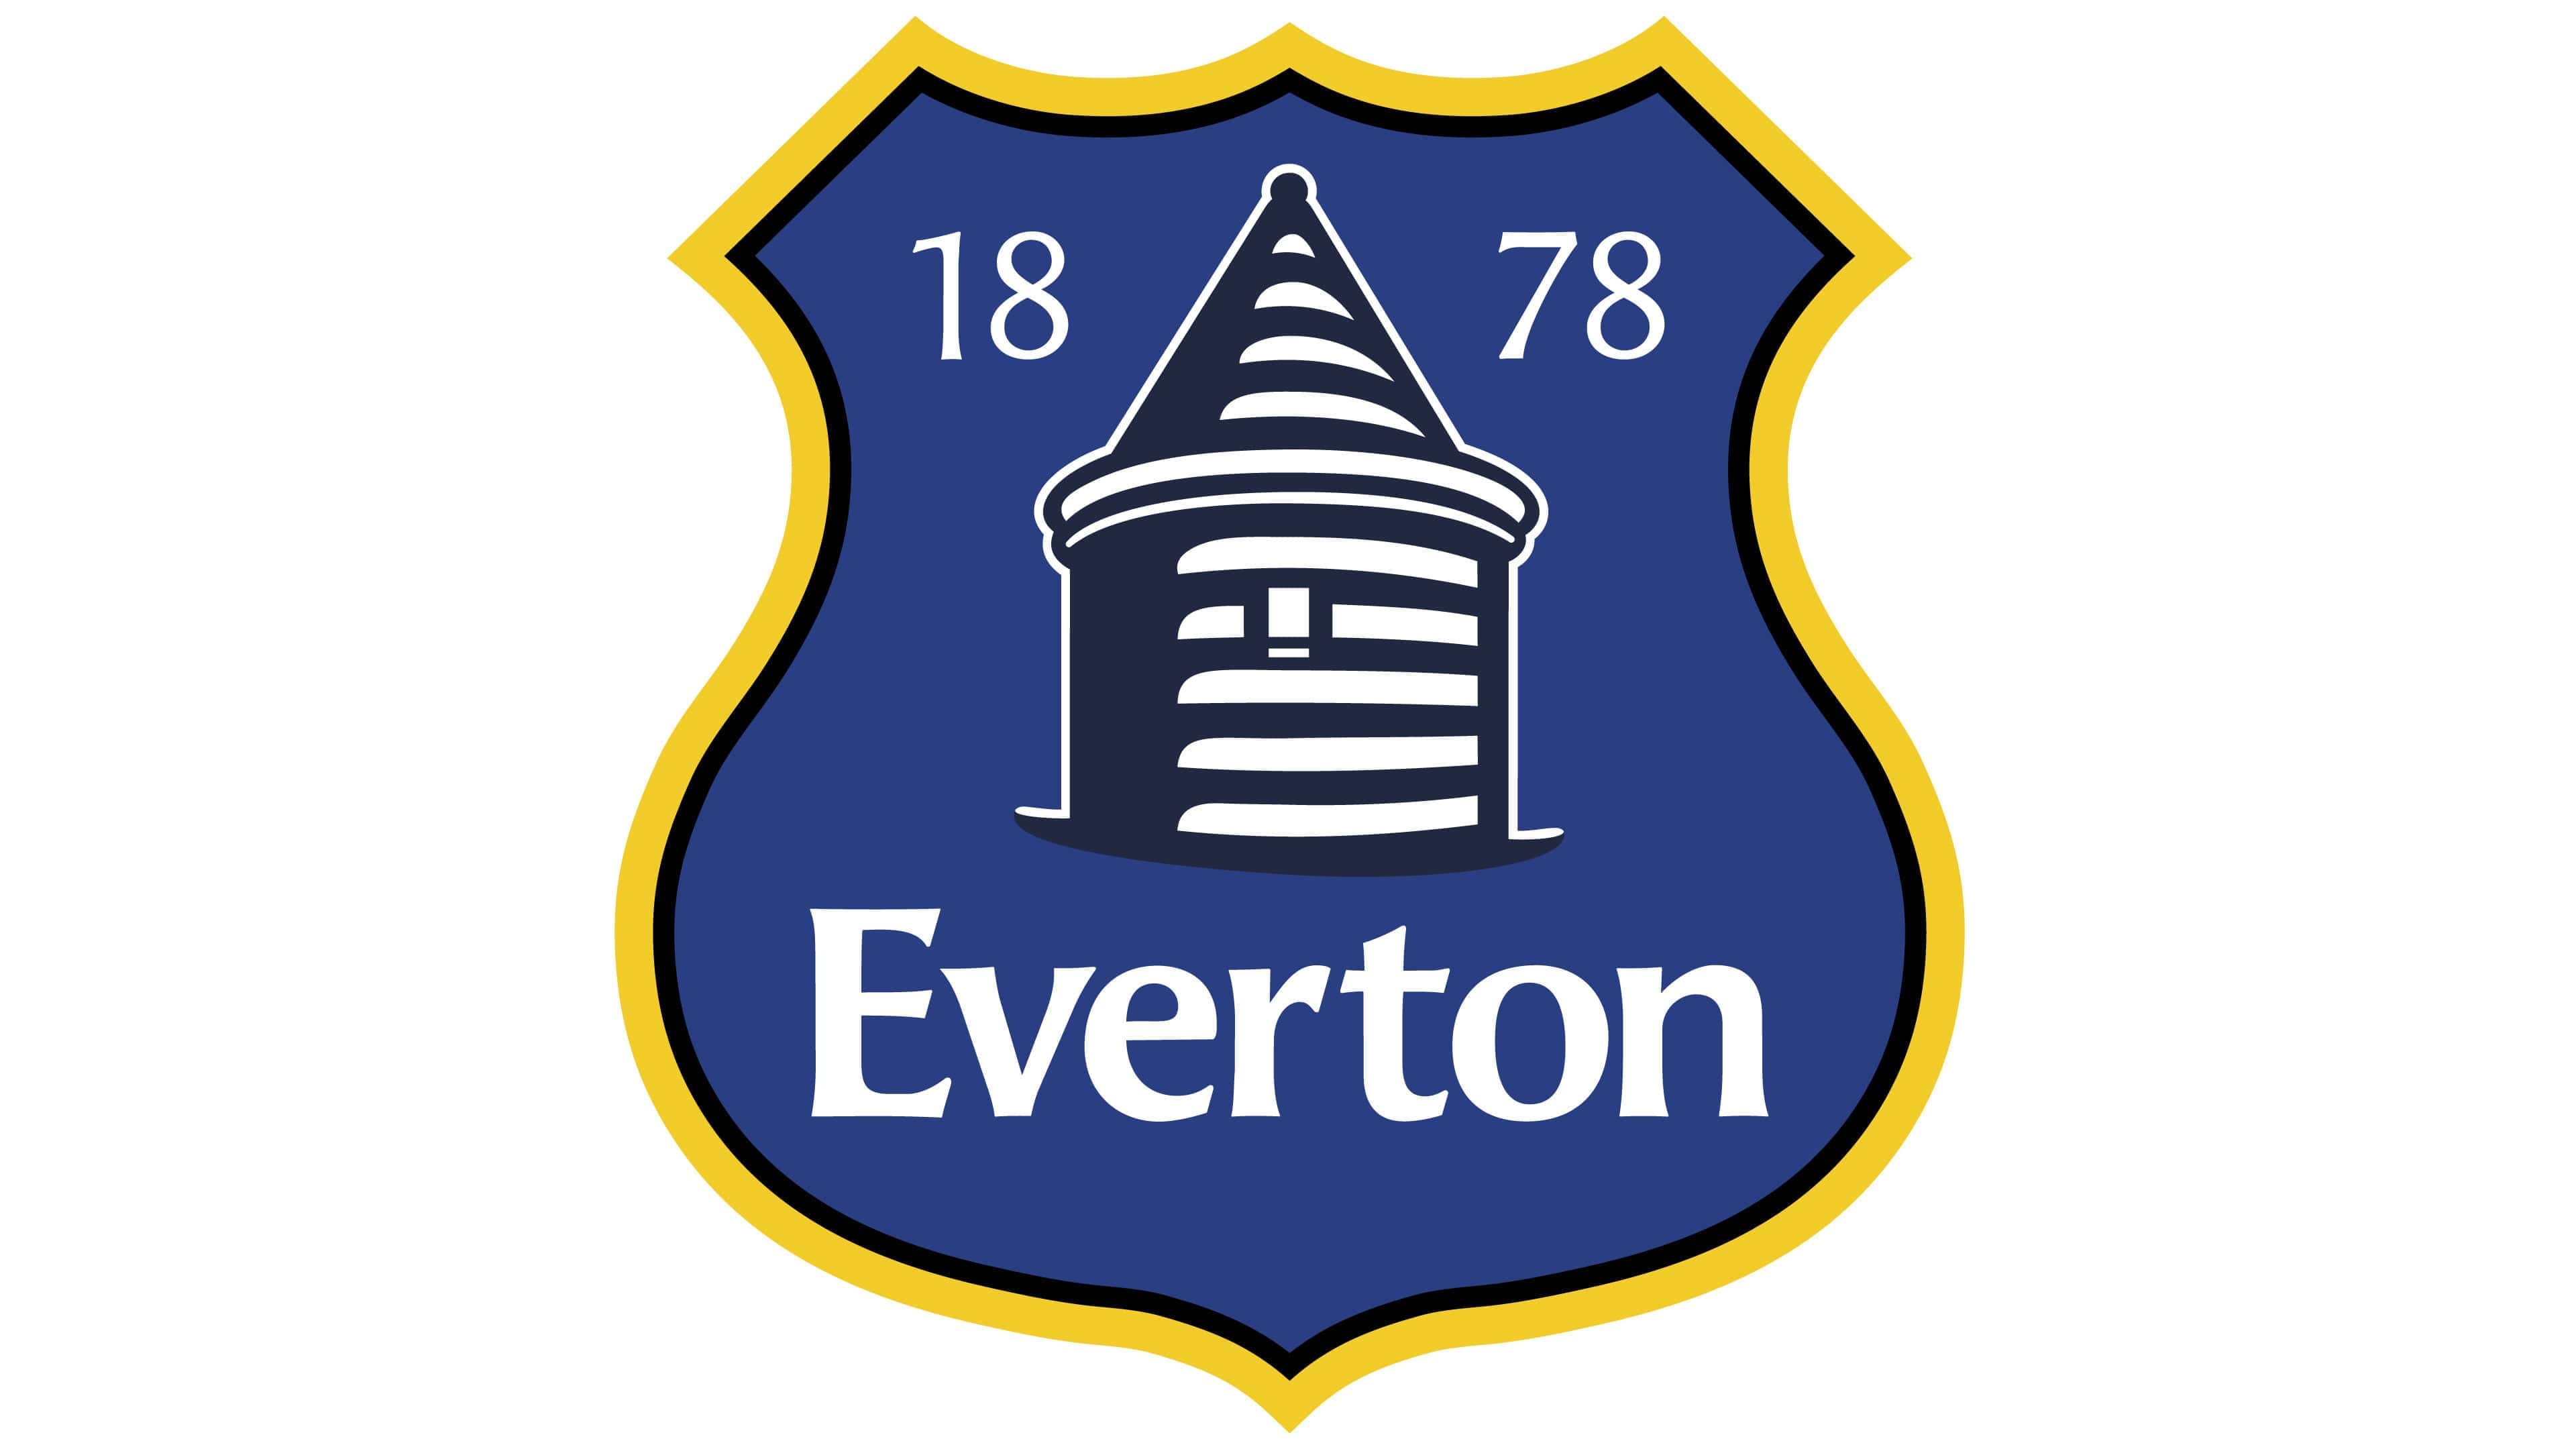 Everton Logo The Most Famous Brands And Company Logos In The World